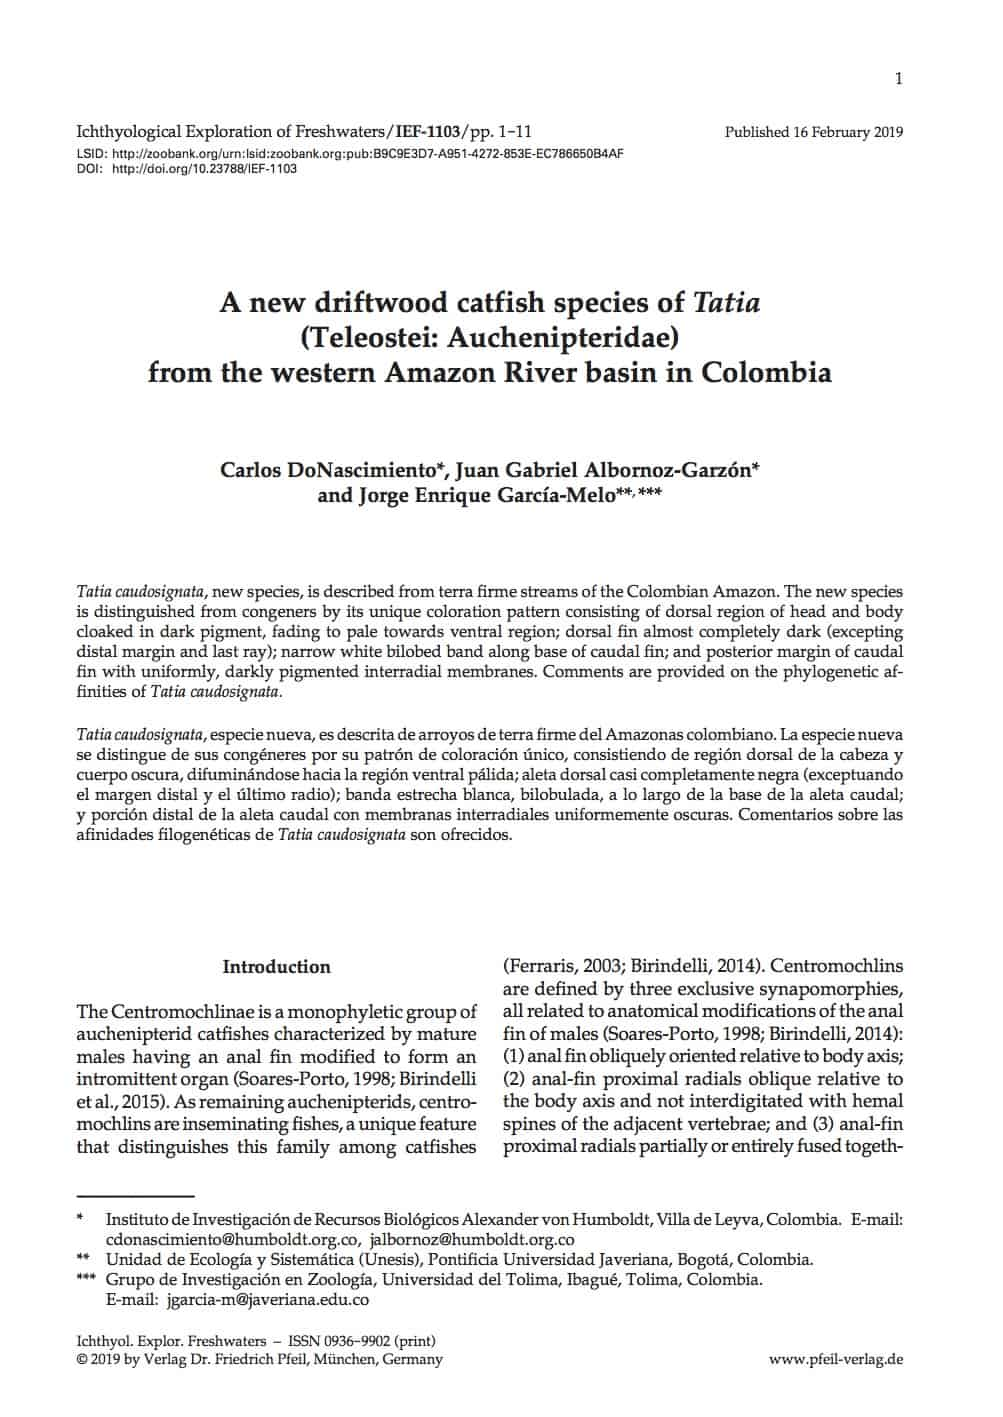 A new driftwood catfish species of Tatia (Teleostei: Auchenipteridae) from the western Amazon River basin in Colombia